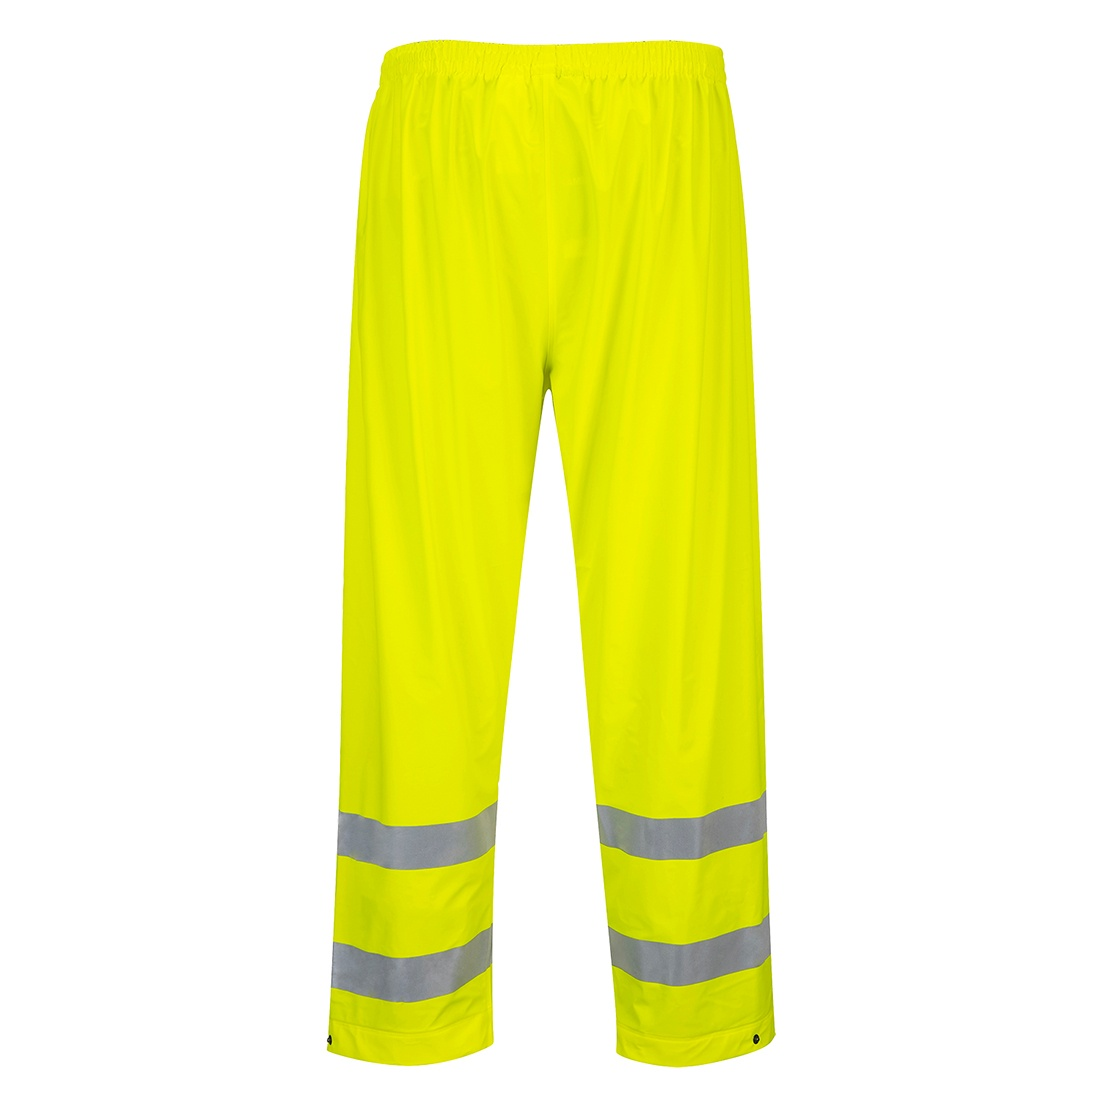 Sealtex Ultra Reflective Trousers back view